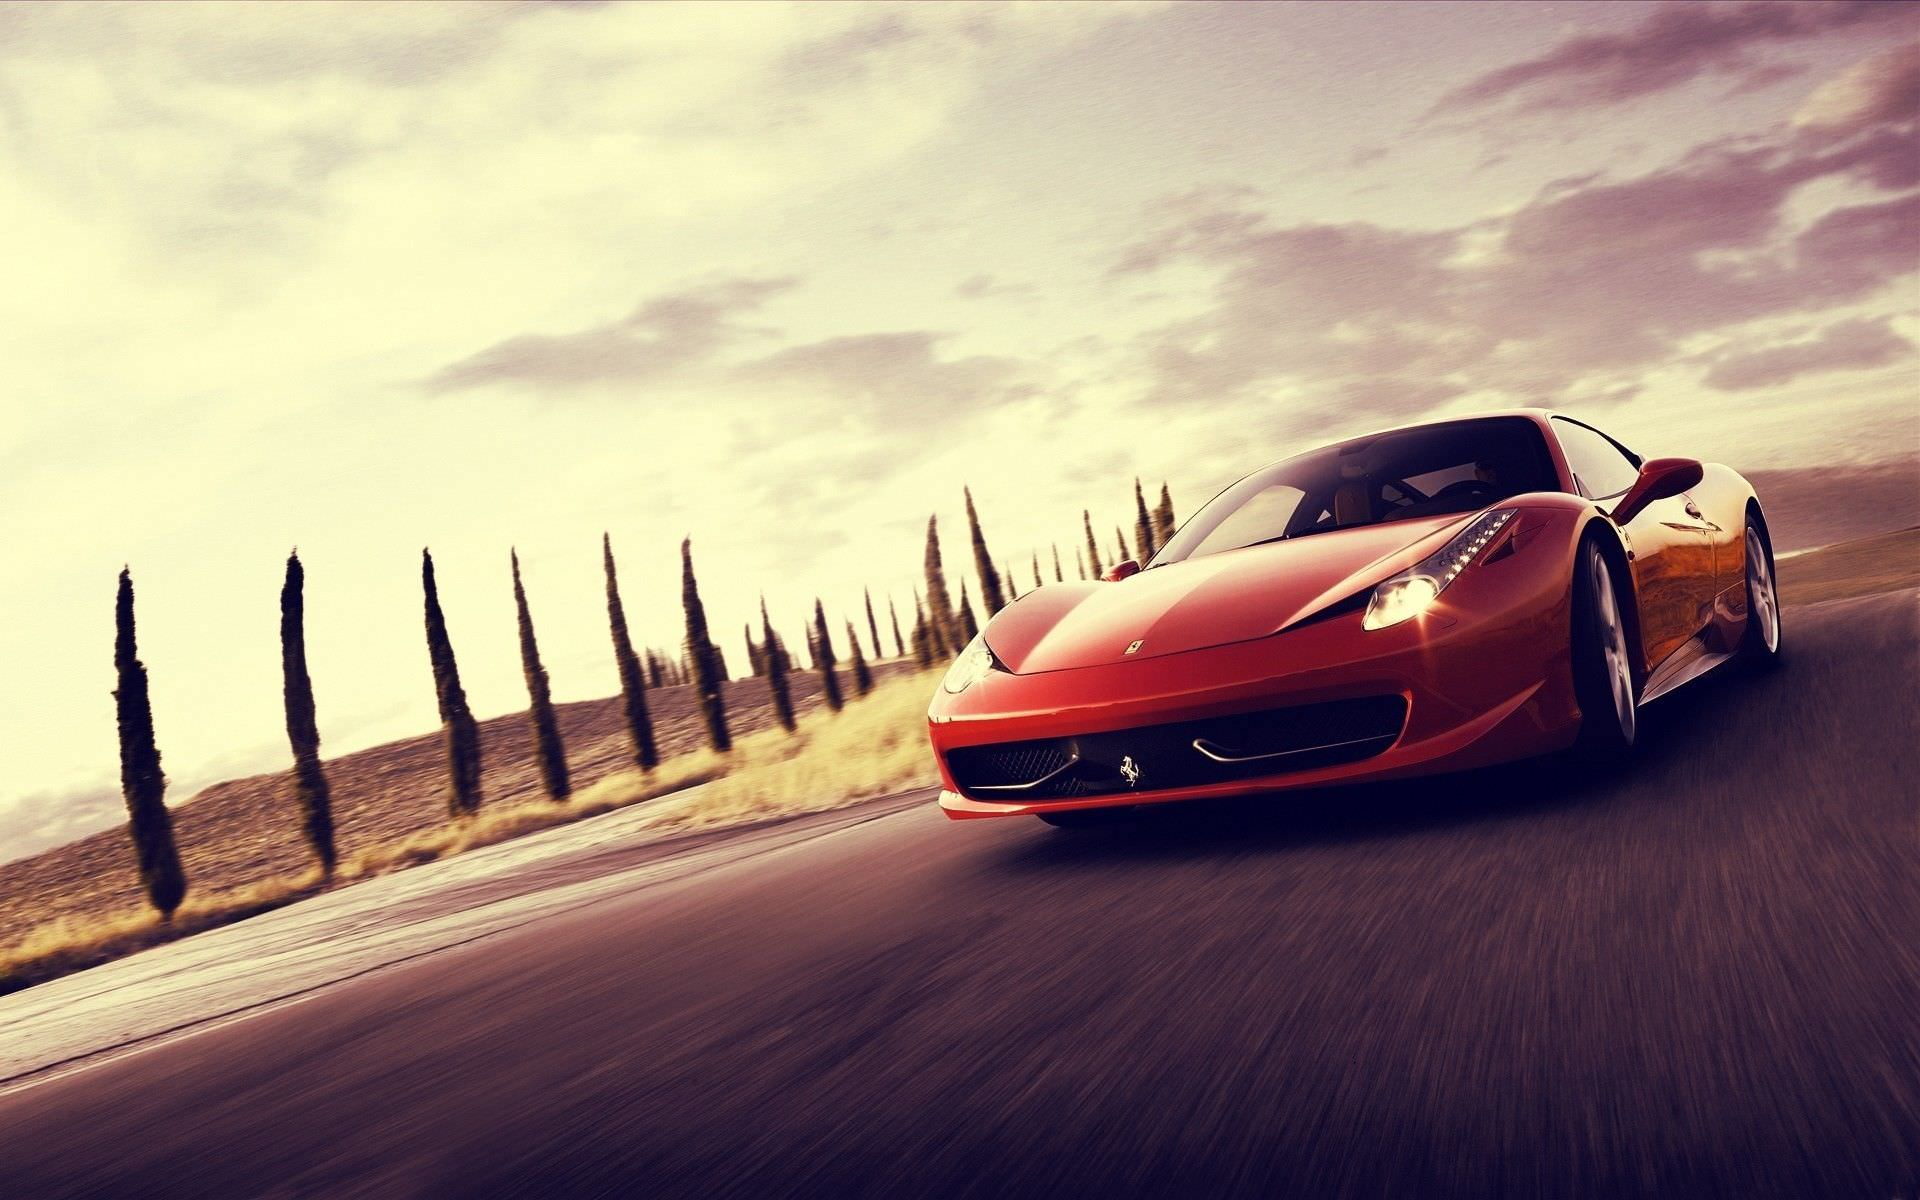 185+ HD Car Backgrounds, Wallpapers, Images, Pictures | Design Trends ...